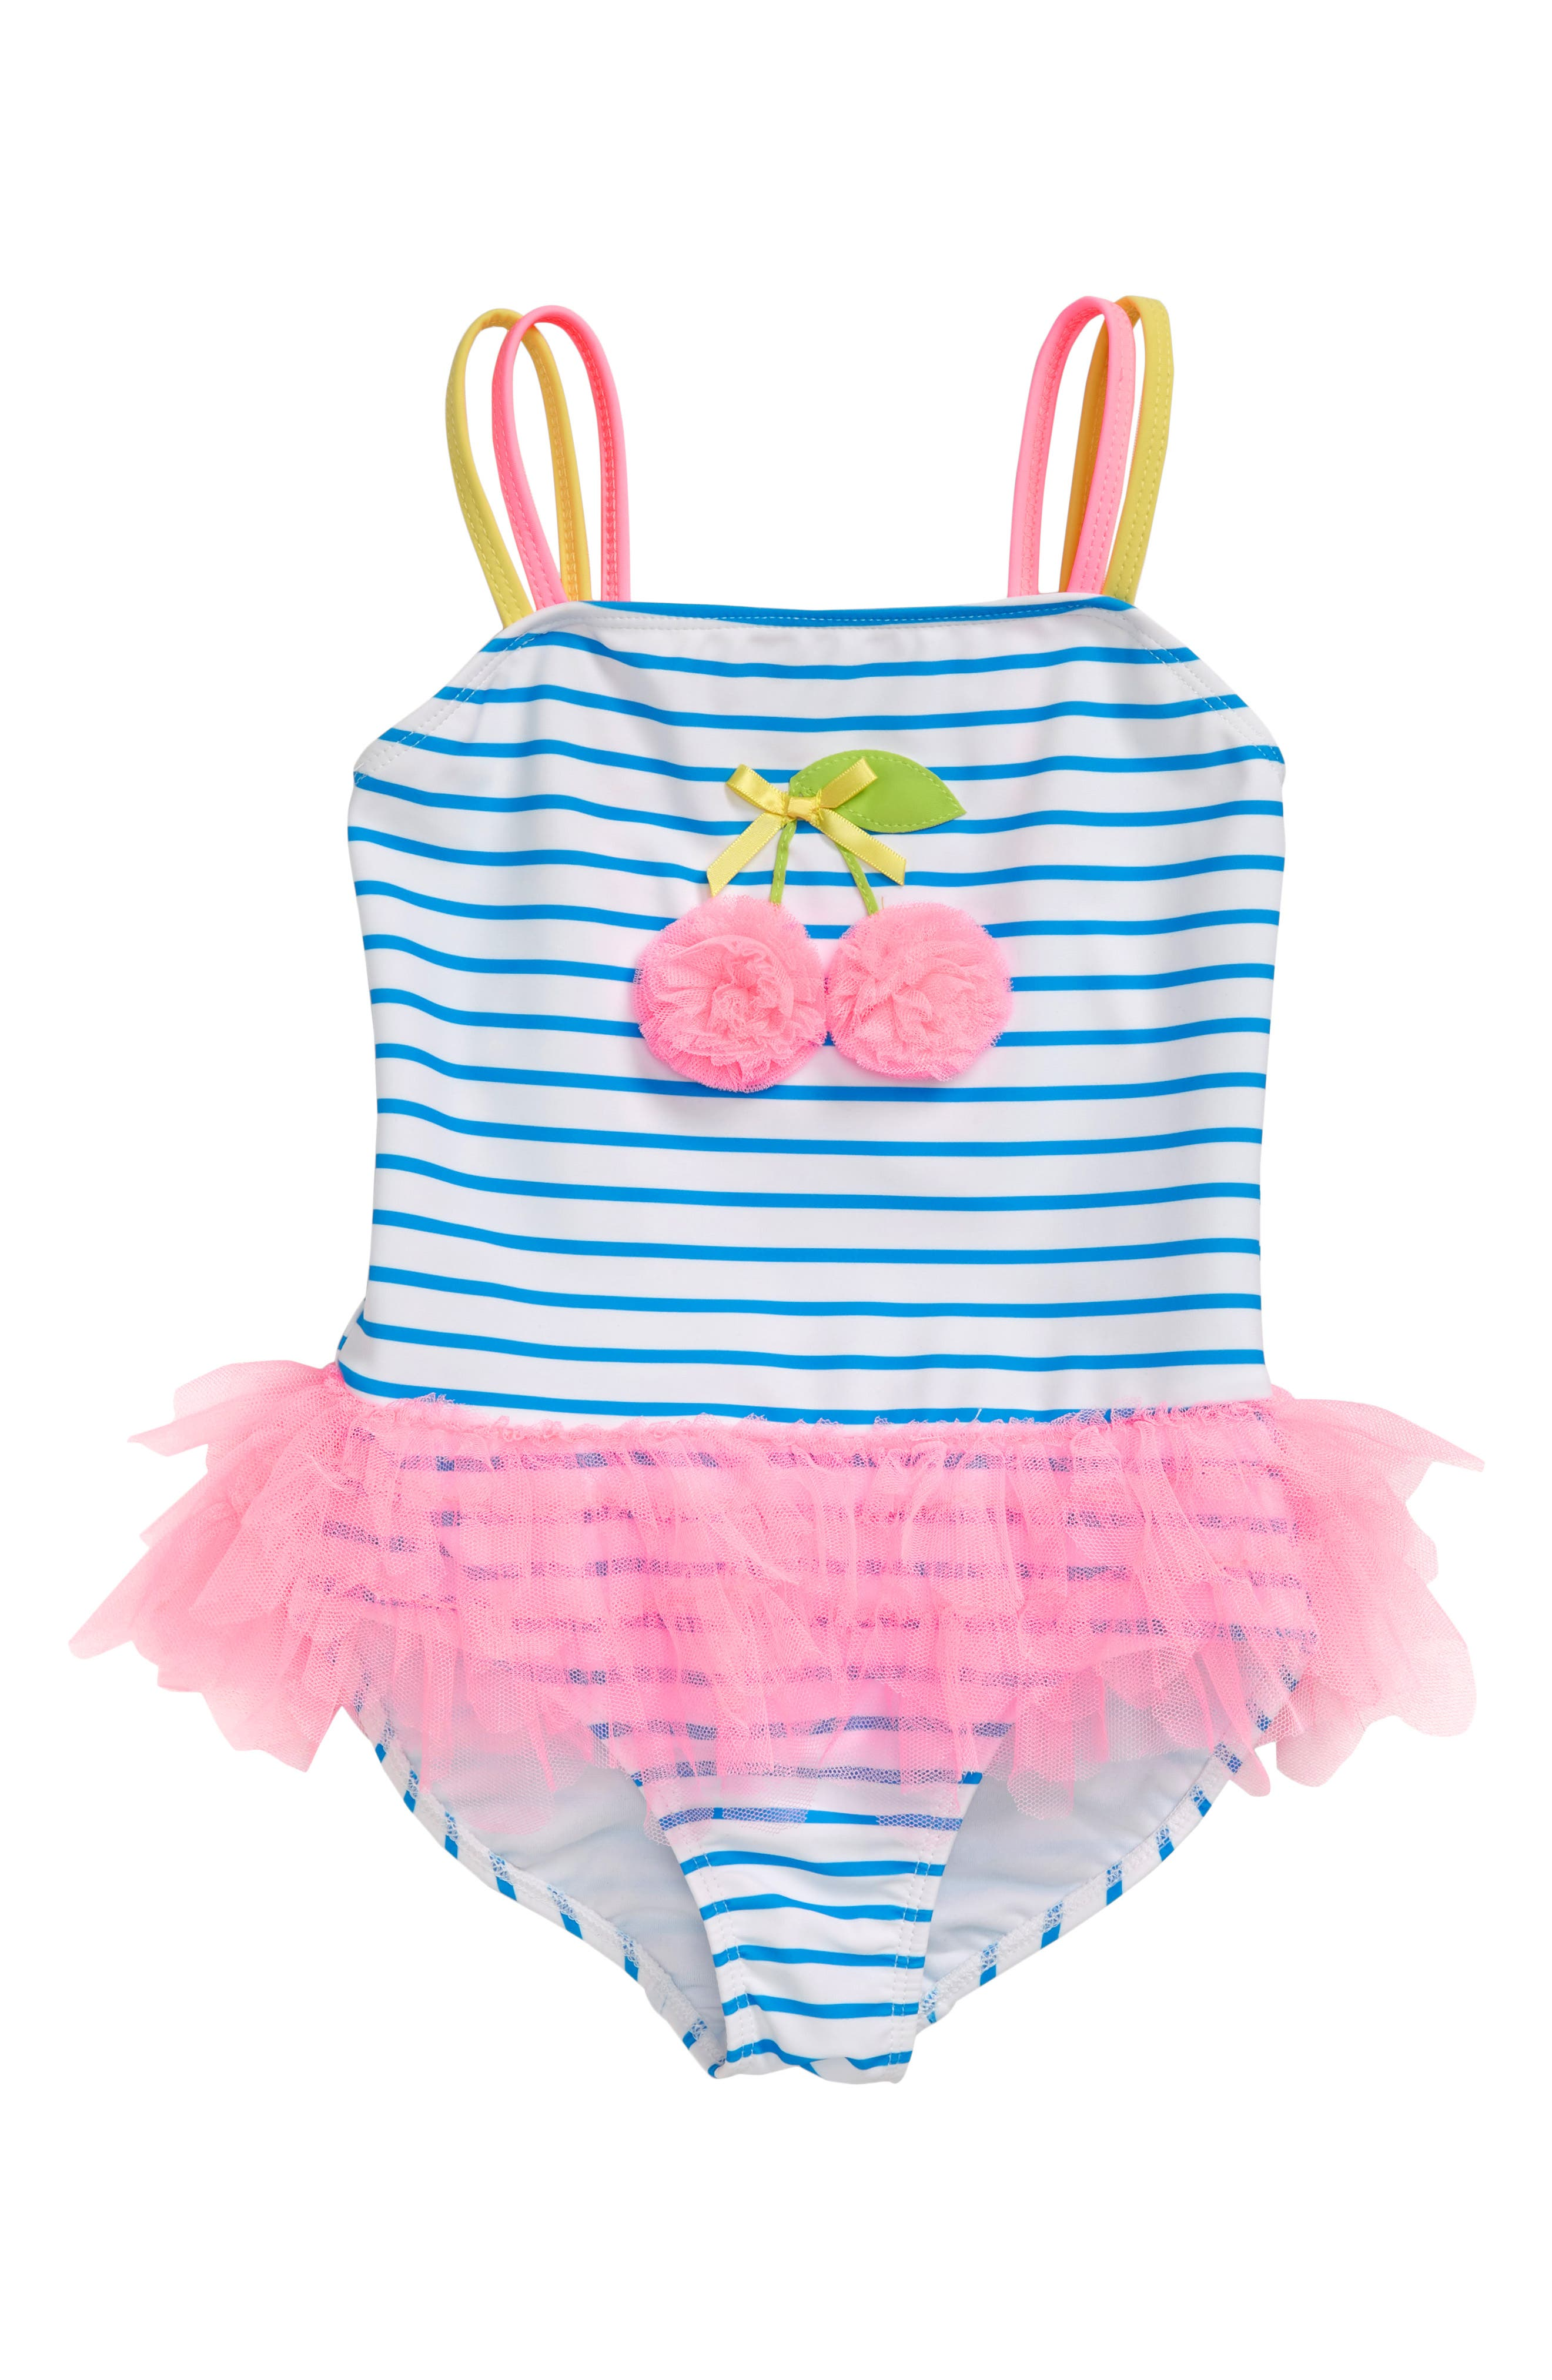 Toddler Girls Kate Mack Cherry Tutu OnePiece Swimsuit Size 4T  White